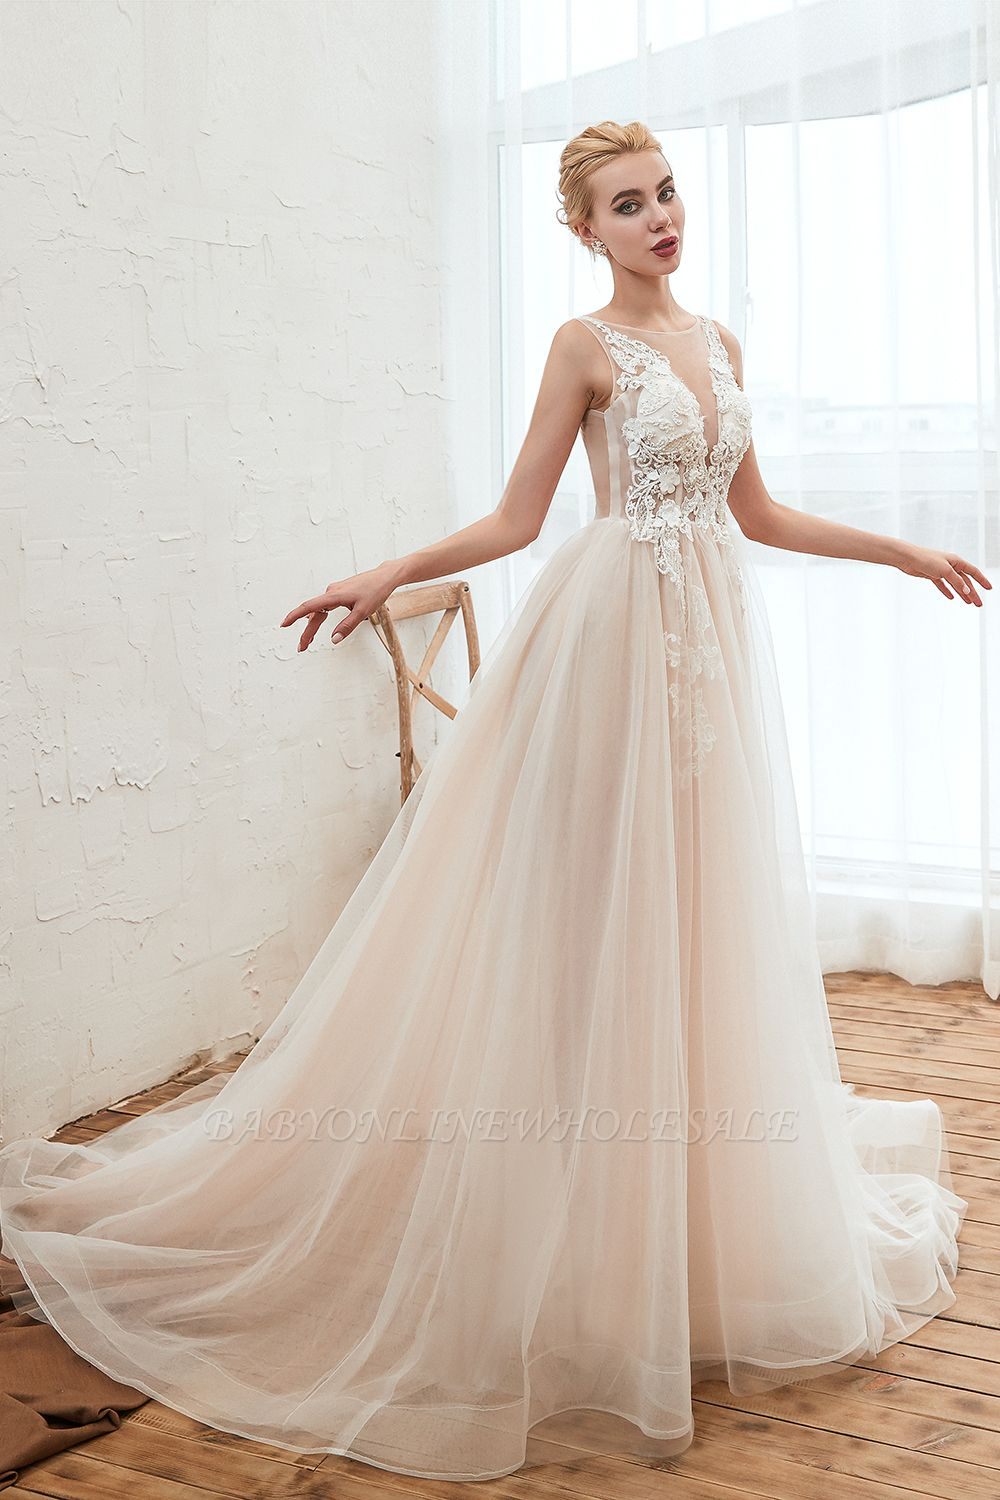 Illsuion neck Champange Wedding Dress with Chapel Train | Sleeveless Summer Bridal Gowns Online